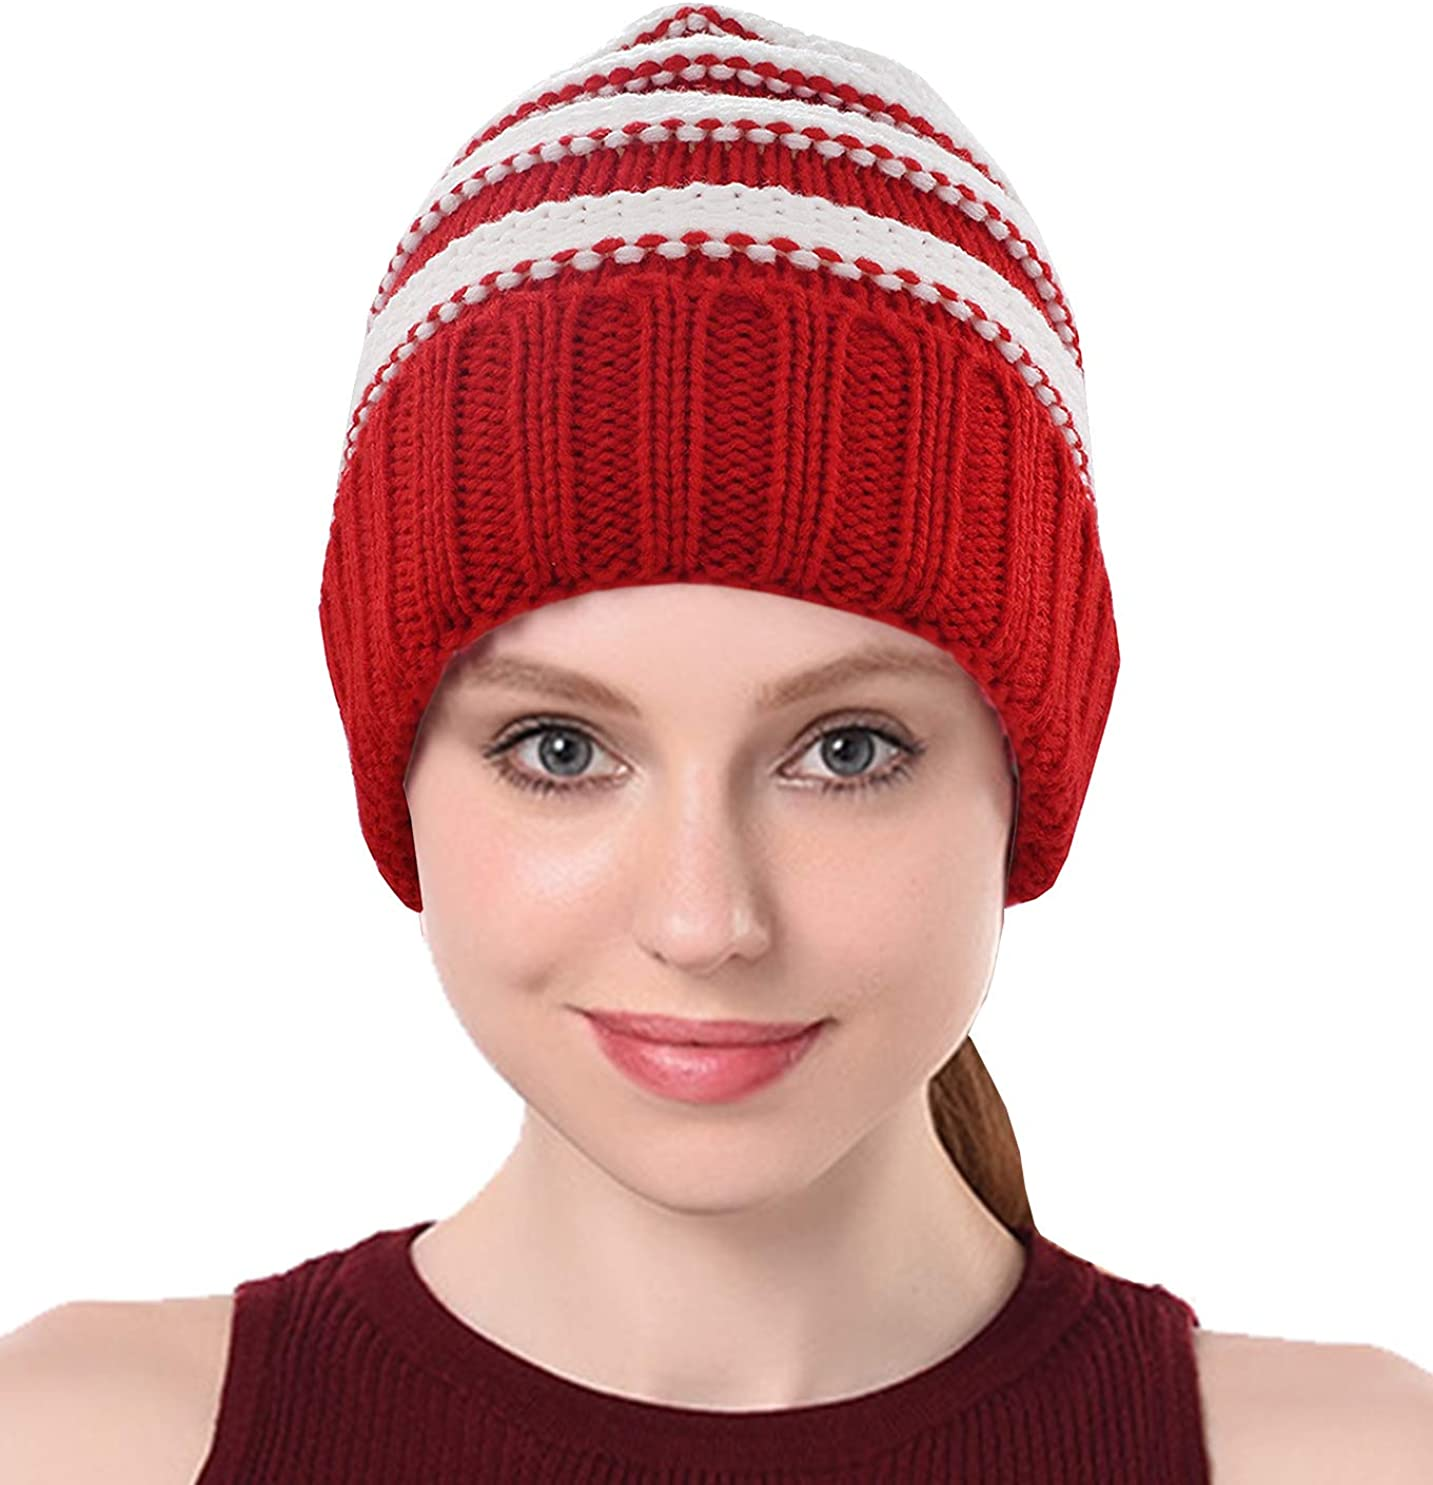 Chunky Cable Knit Slouchy Beanie,Trendy Warm Unisex,Thick Soft Warm Winter Hat Cap